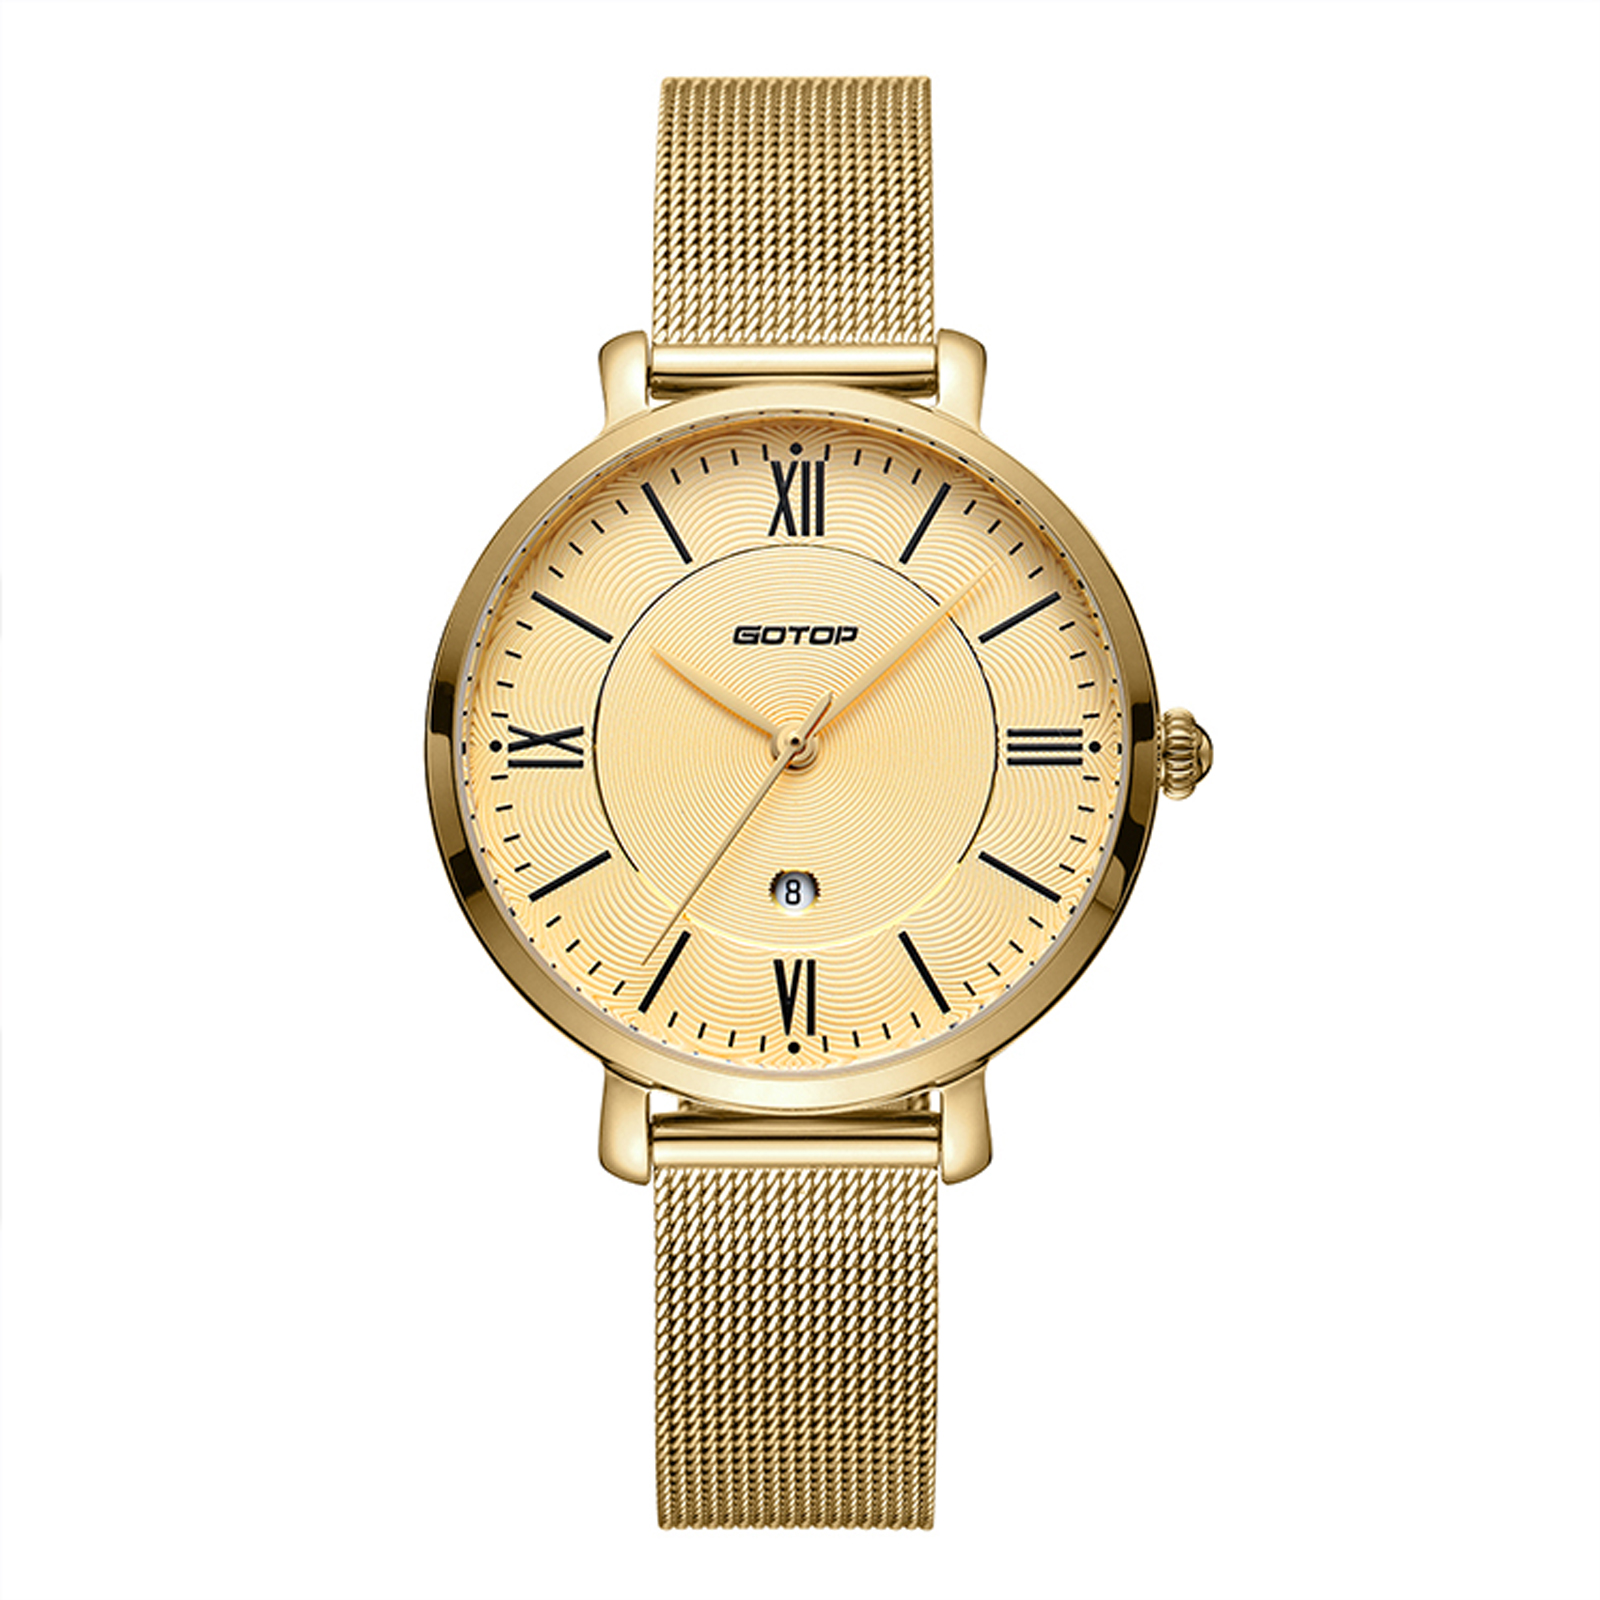 All Gold Stainless Steel Women's Watch